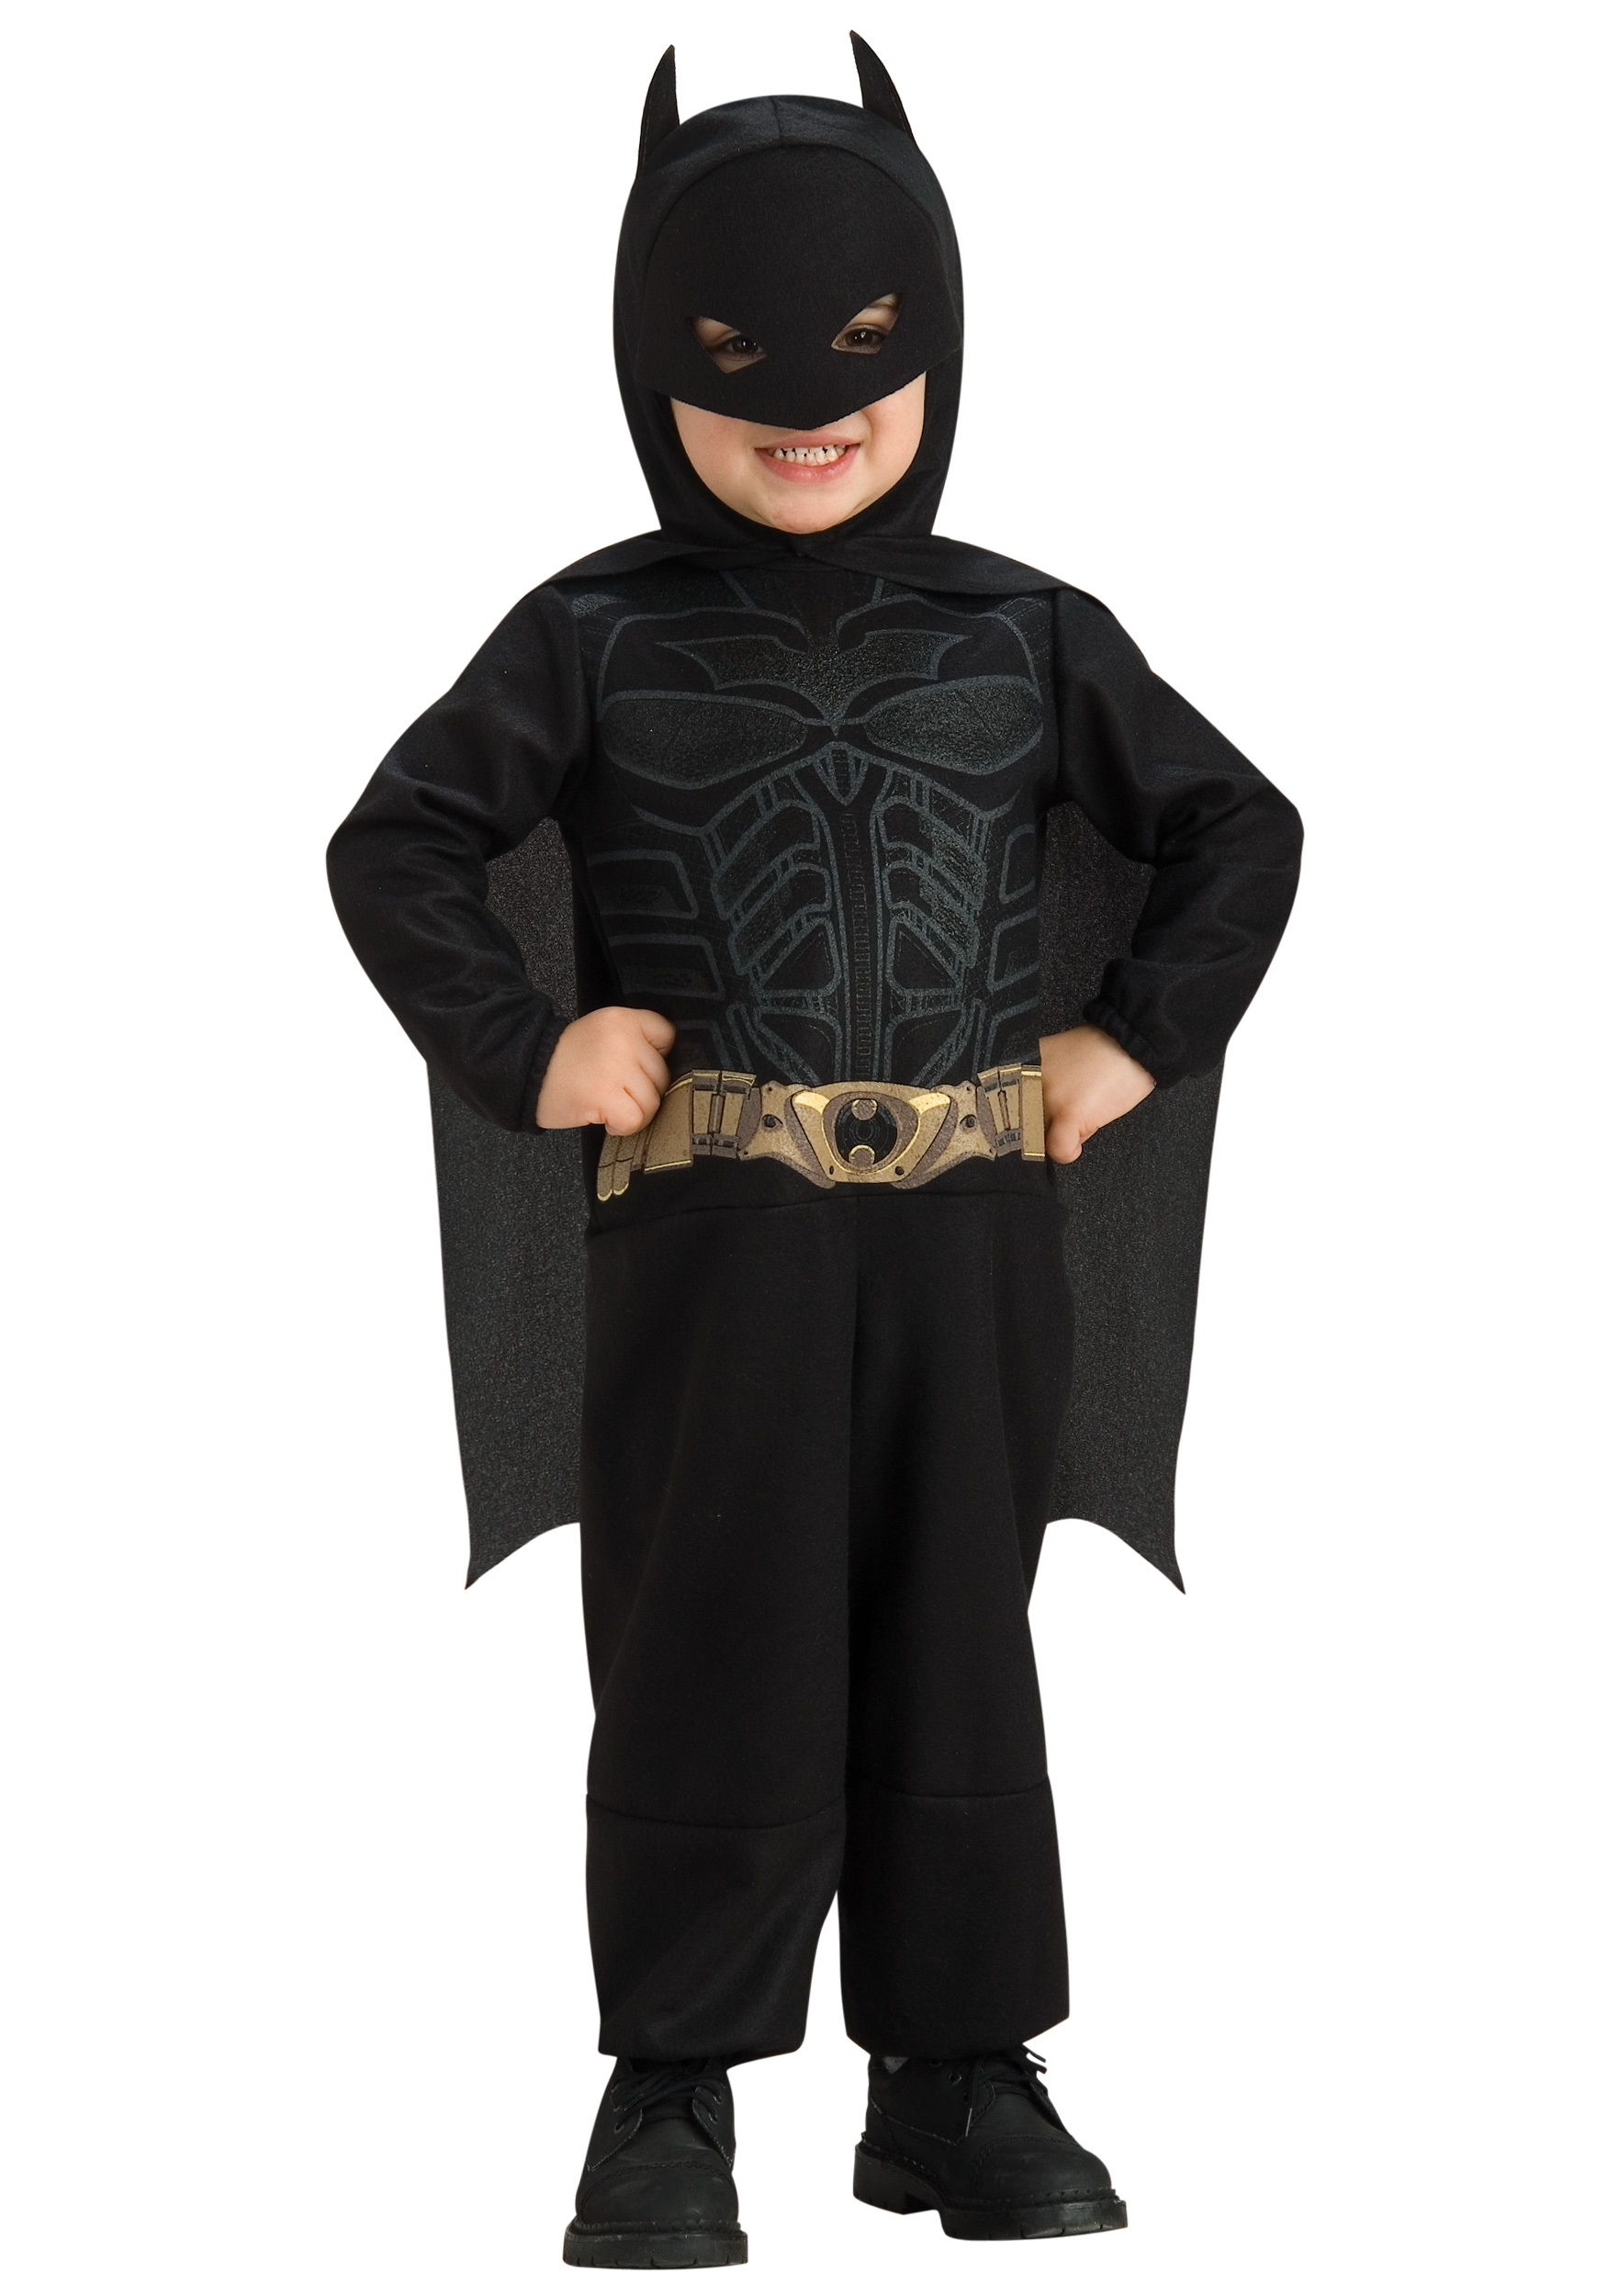 Find great deals on eBay for baby batman outfit. Shop with confidence.